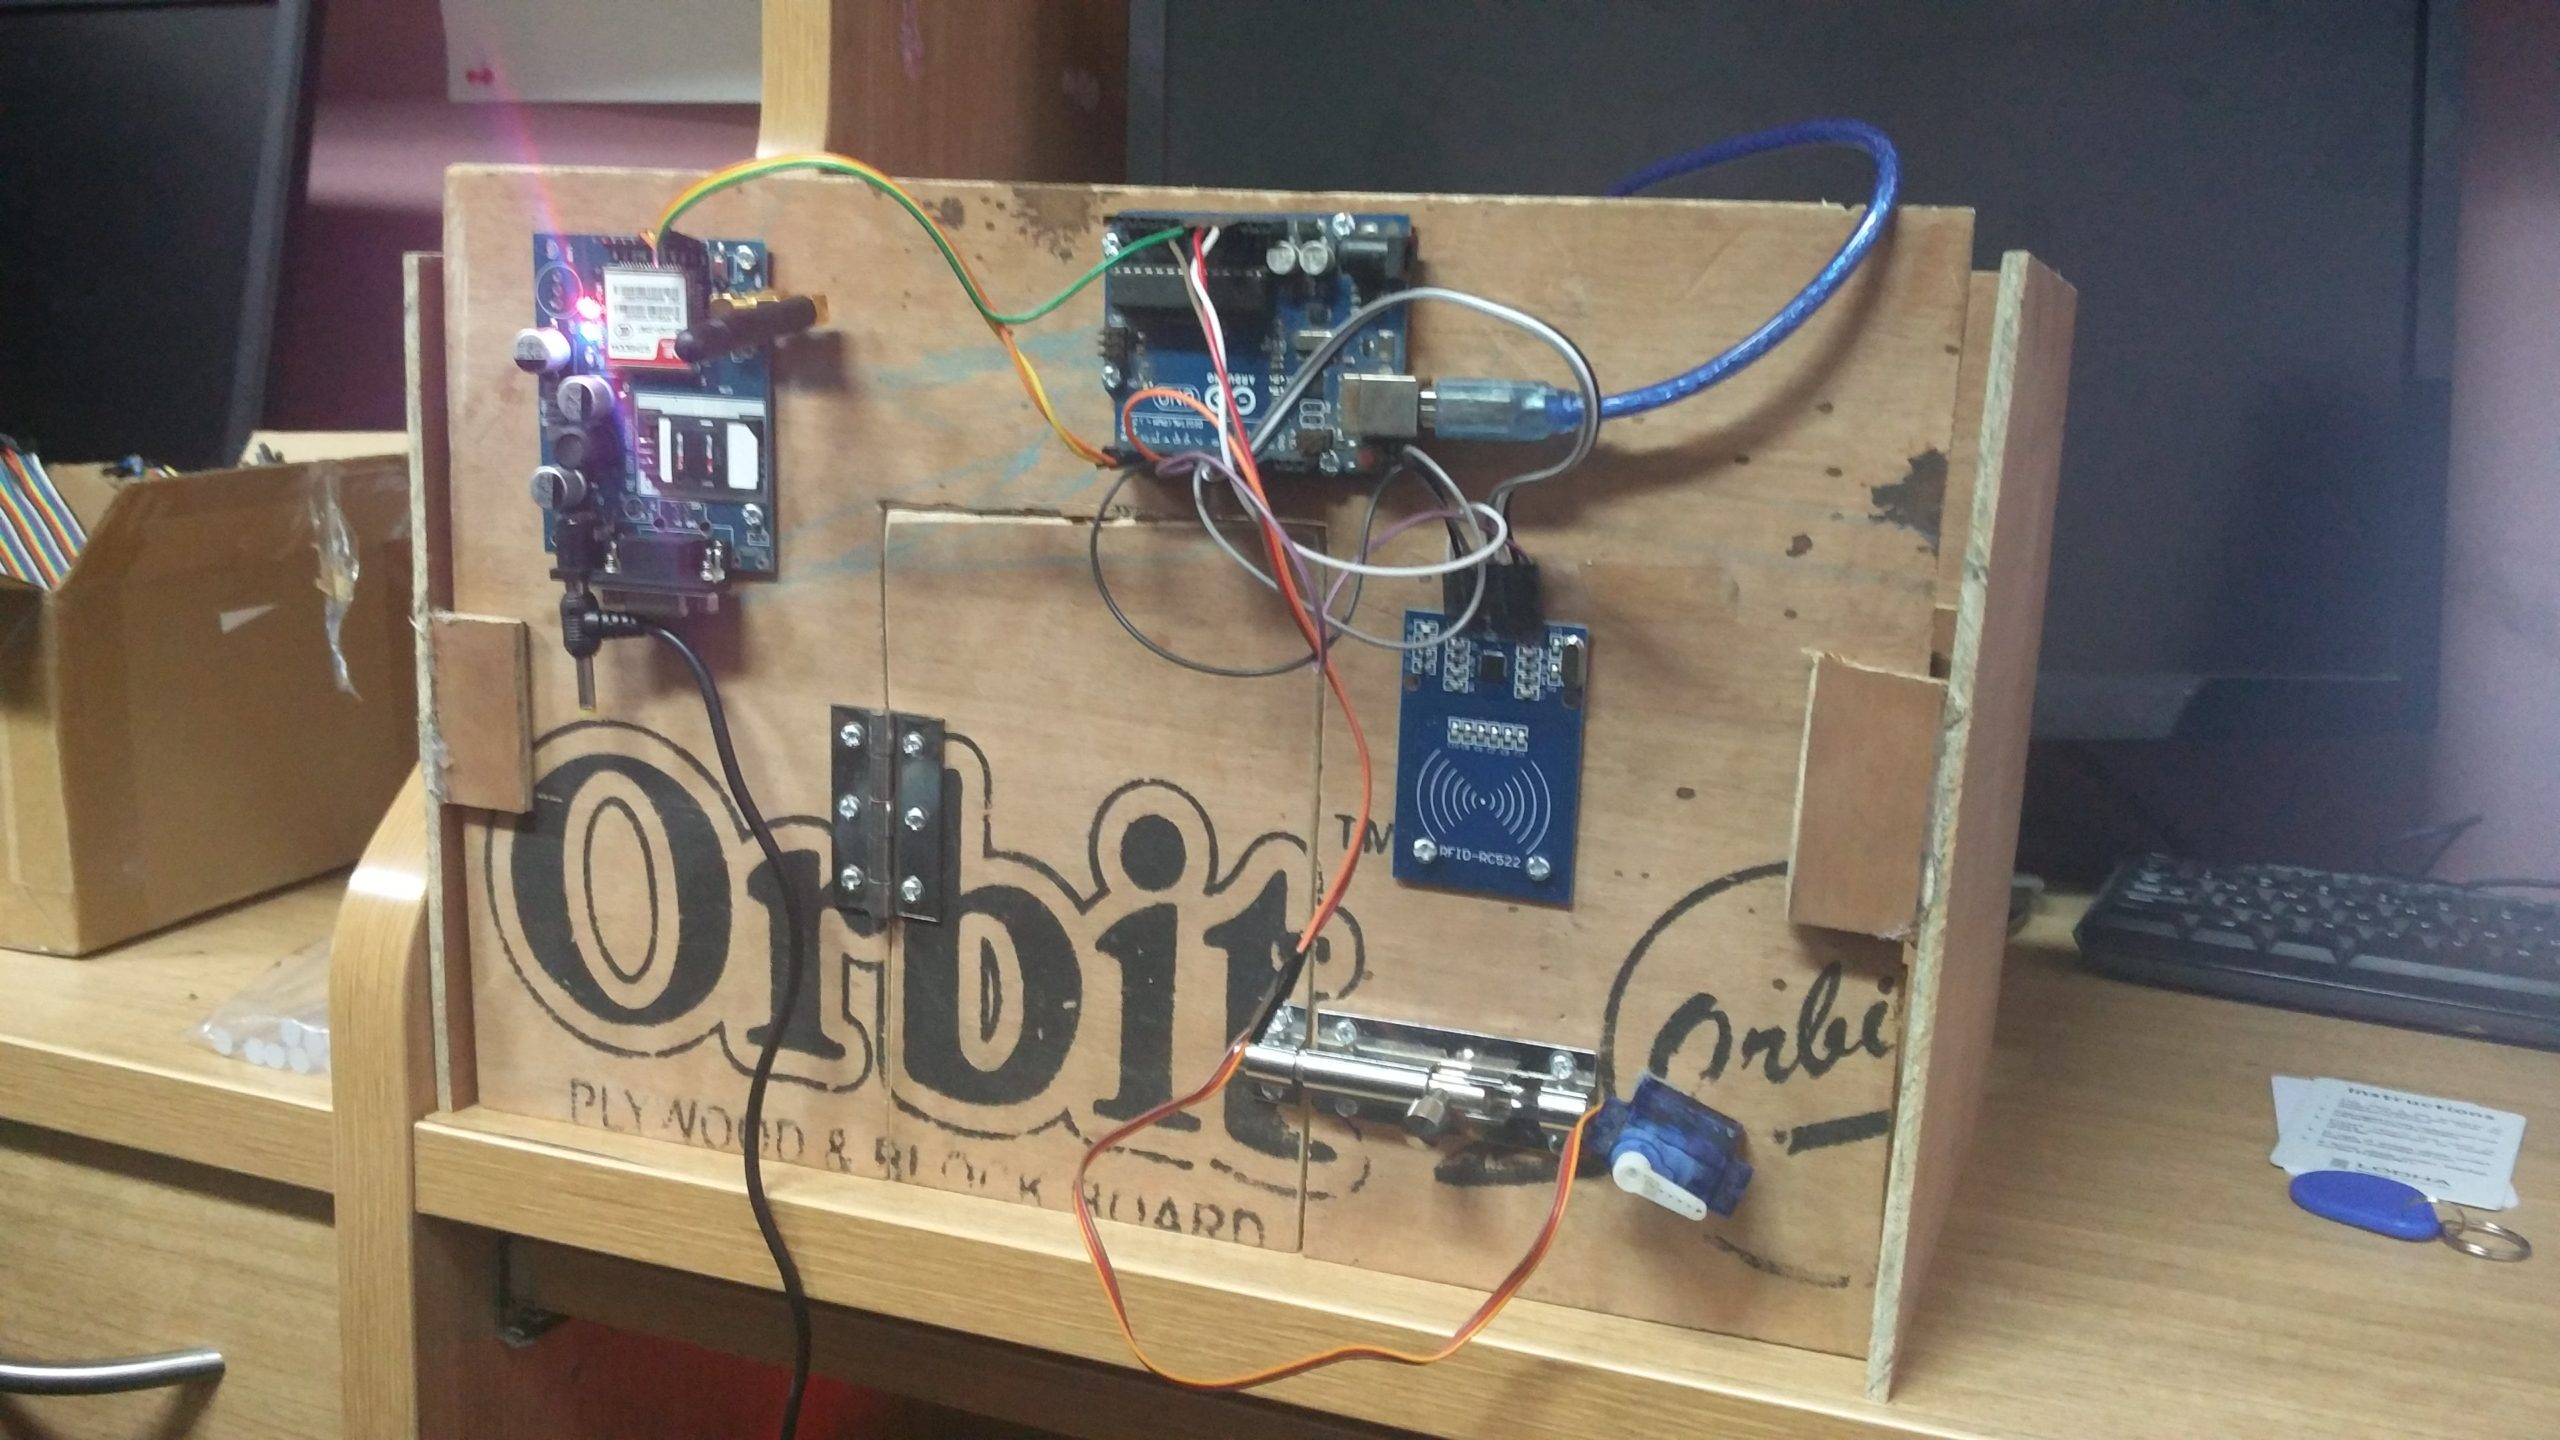 Arduino connected to House model